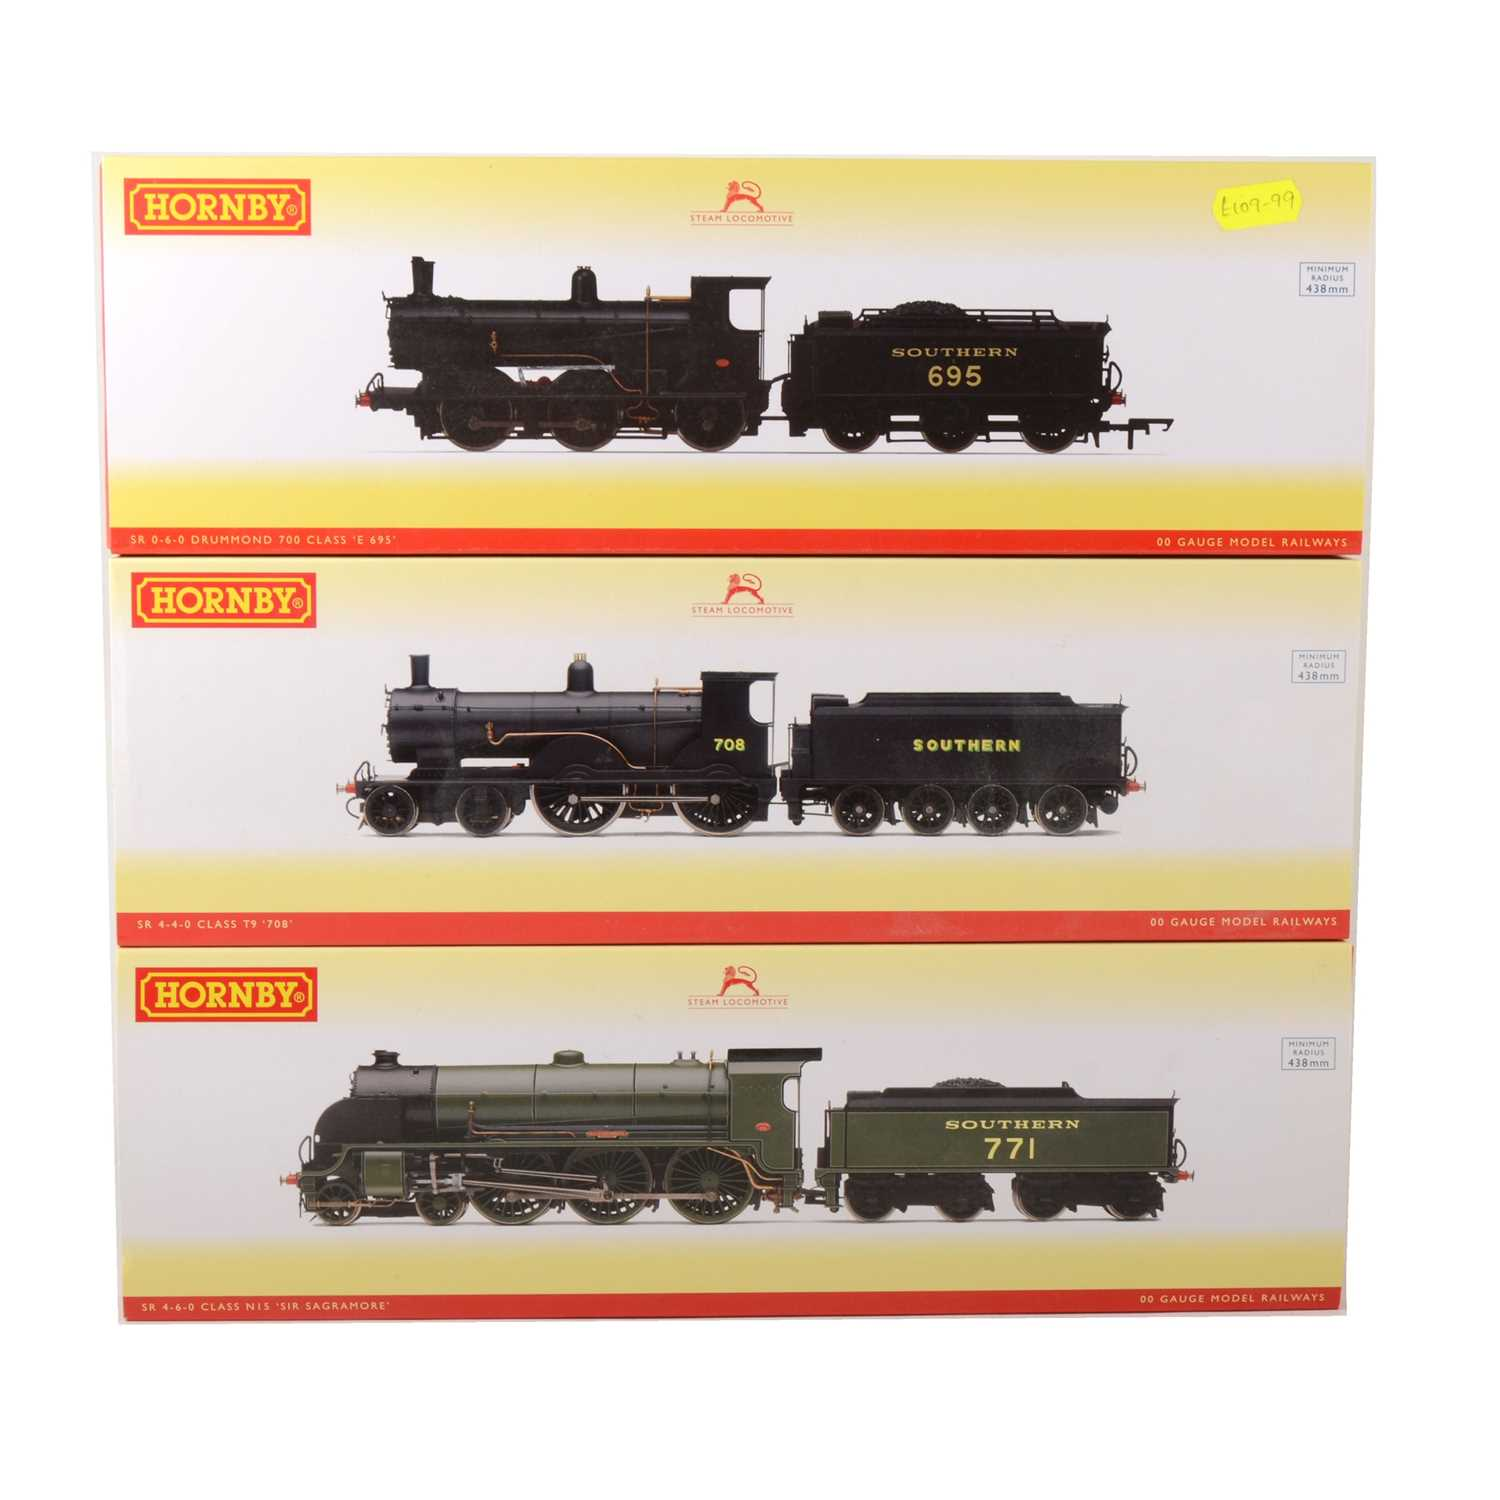 508 - Three Hornby OO gauge model railway locomotives, R3010, R3108 and R3238.